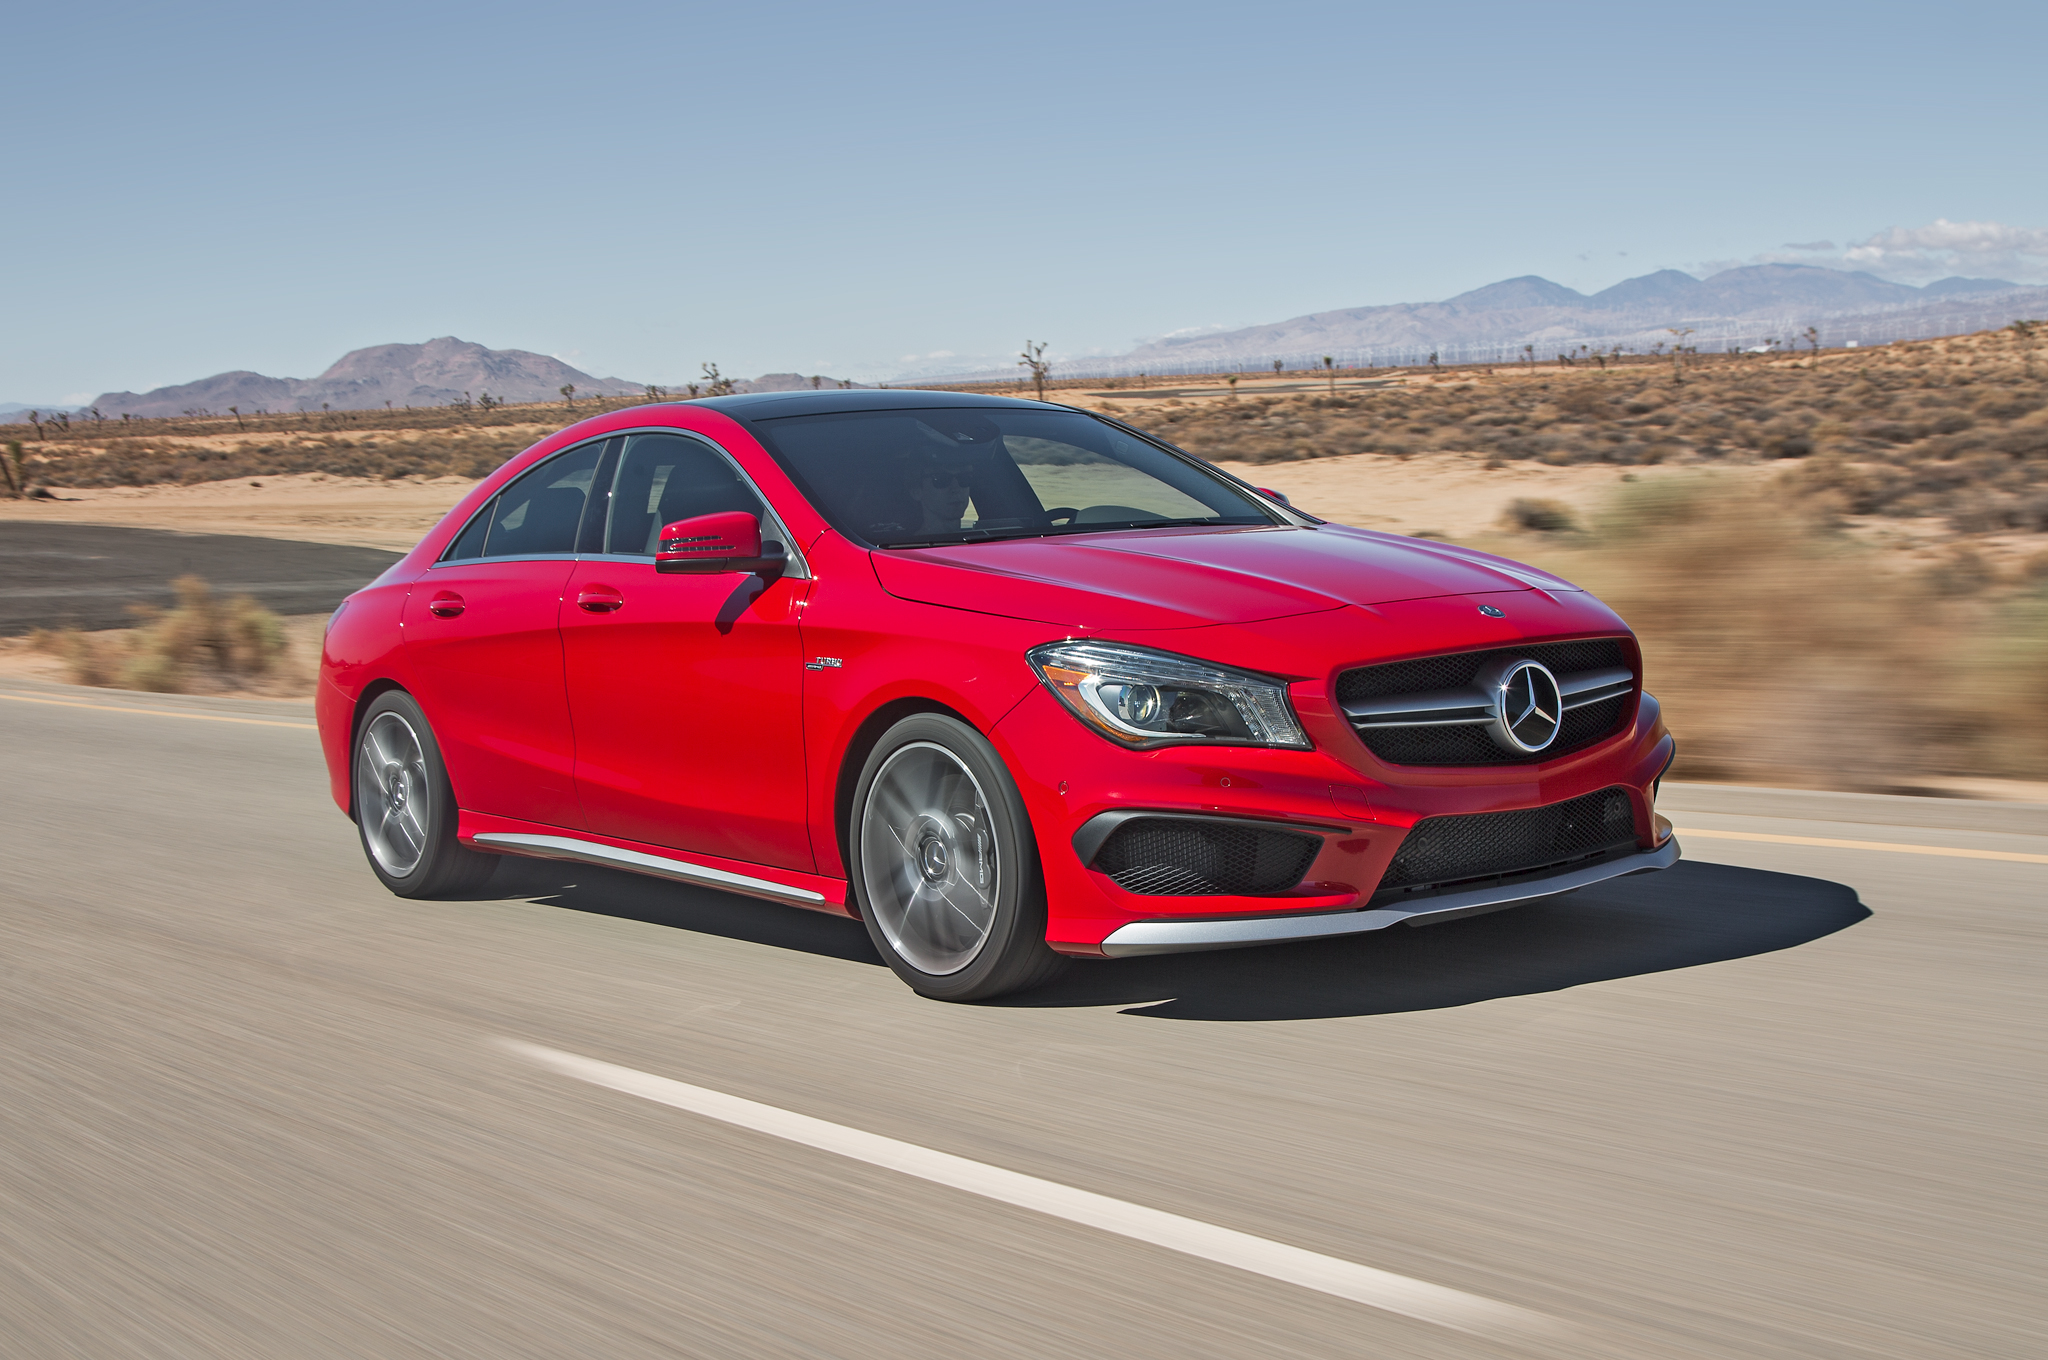 mercedes benz cla 45 amg petrol car review specification mileage and price surfolks. Black Bedroom Furniture Sets. Home Design Ideas